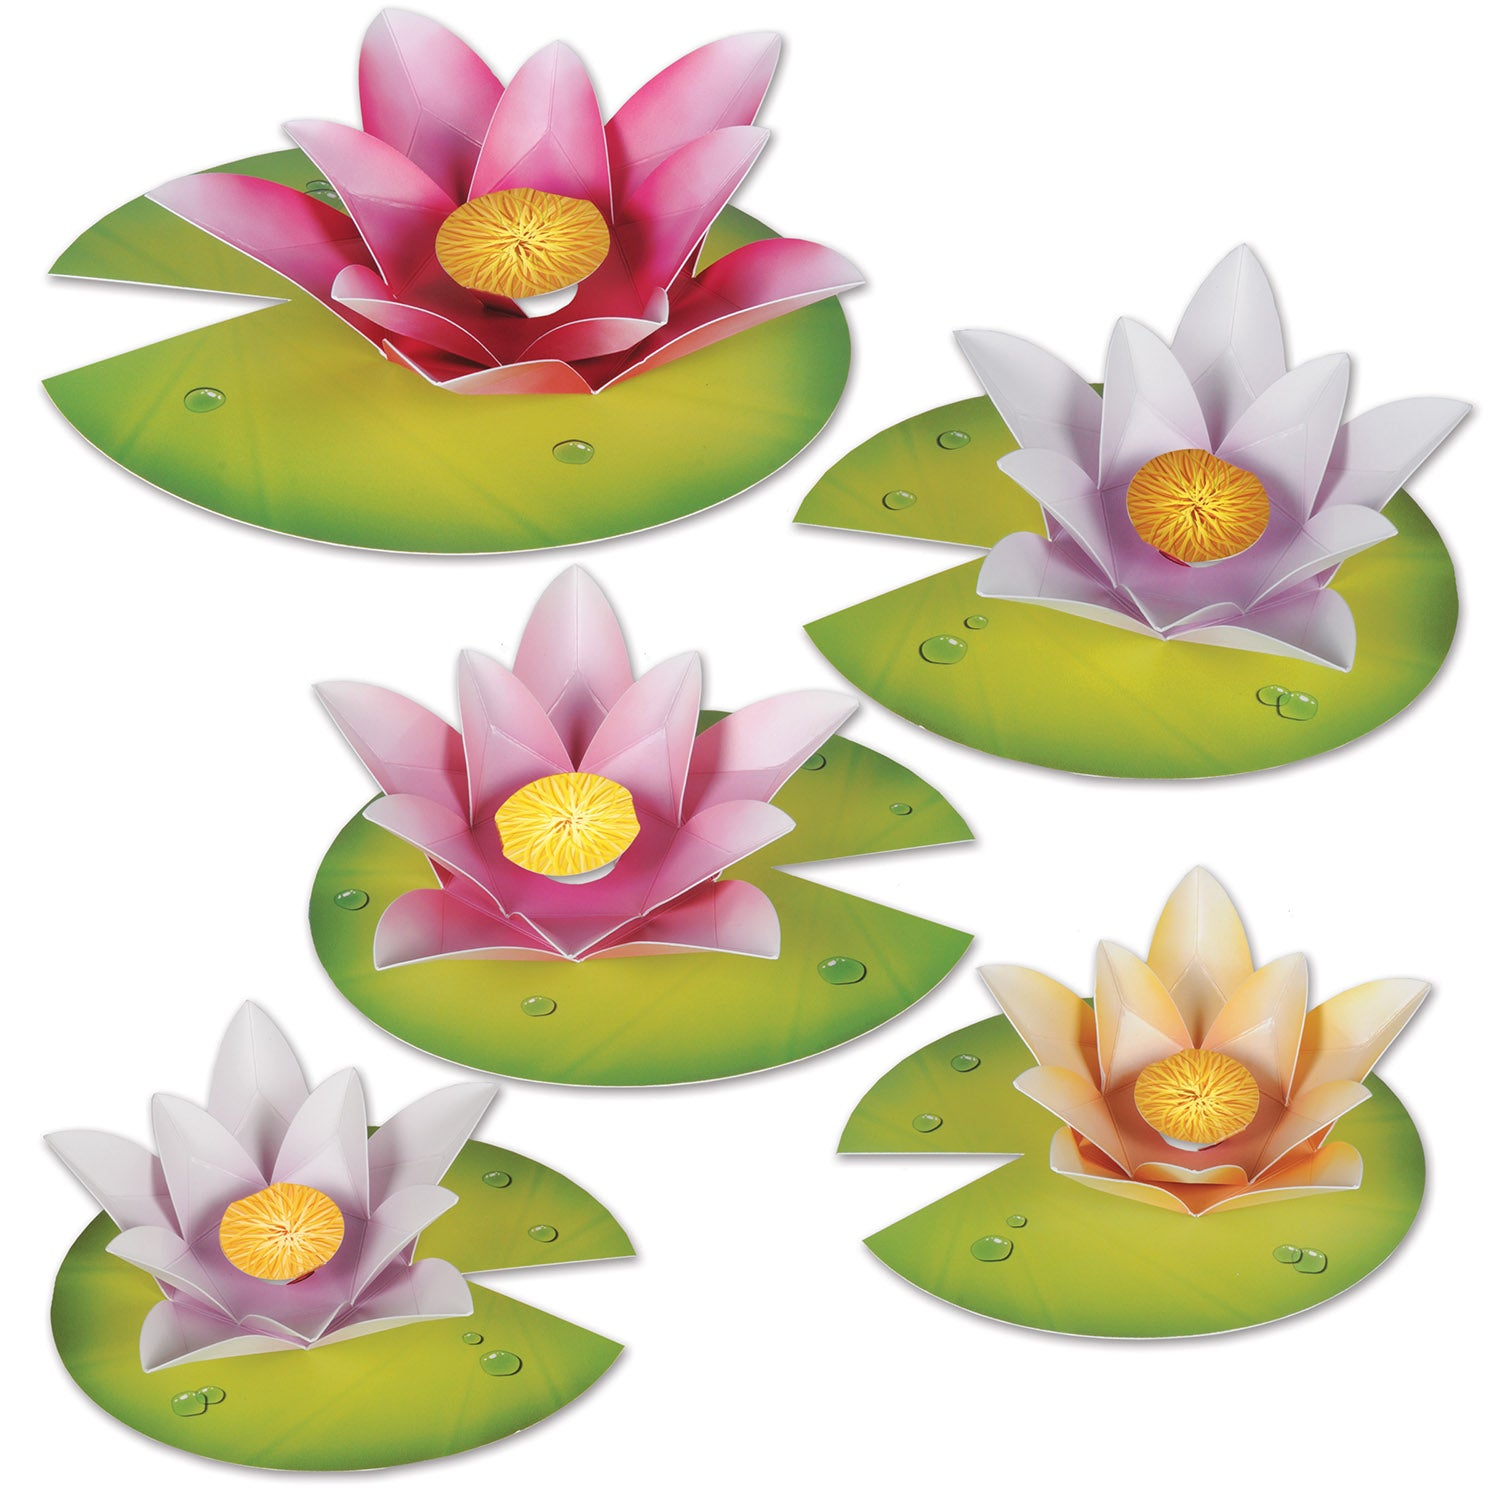 Water Lily Paper Flowers (5/Pkg) by Beistle - Spring/Summer Theme Decorations